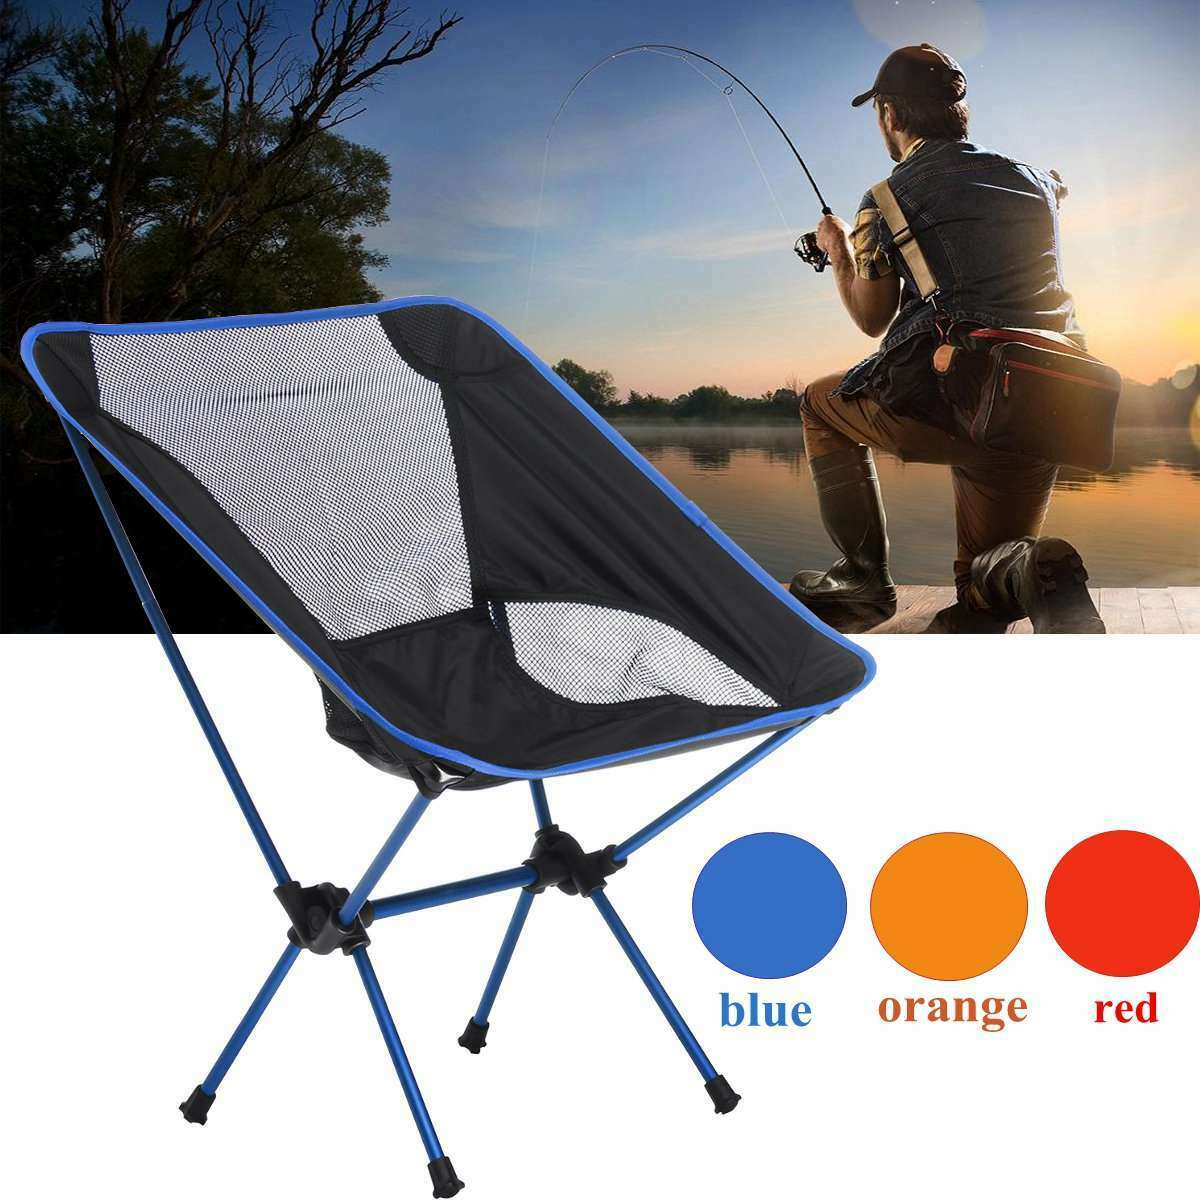 Portable Folding Camping Chair Outdoor Fishing Hiking Foldable Table Seat Chairs